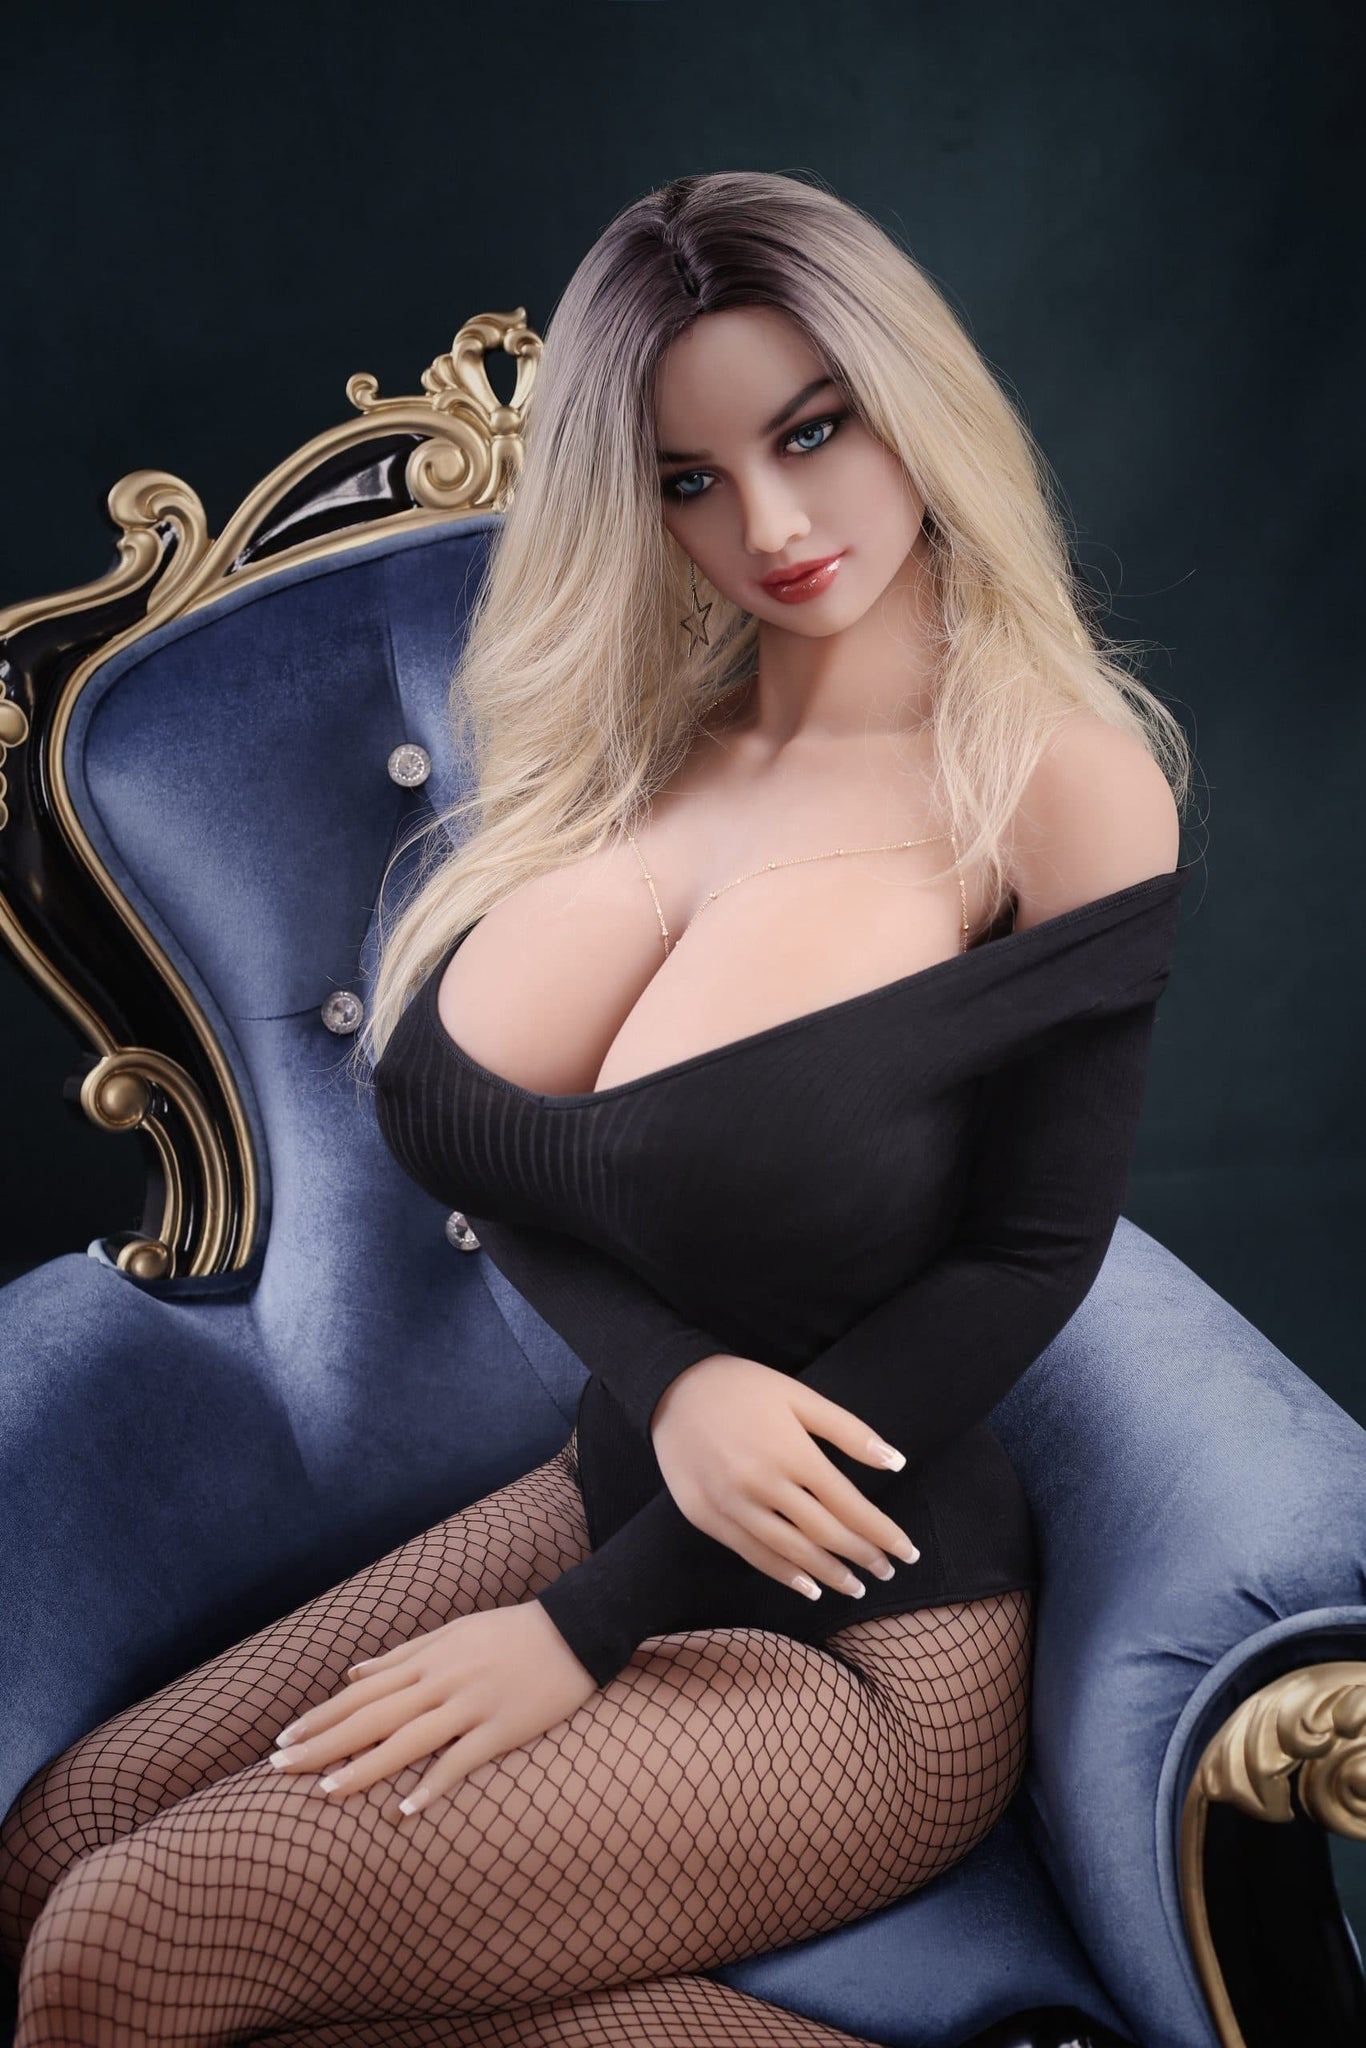 brit 170cm af blonde giant massive tits athletic tpe sex doll(15)